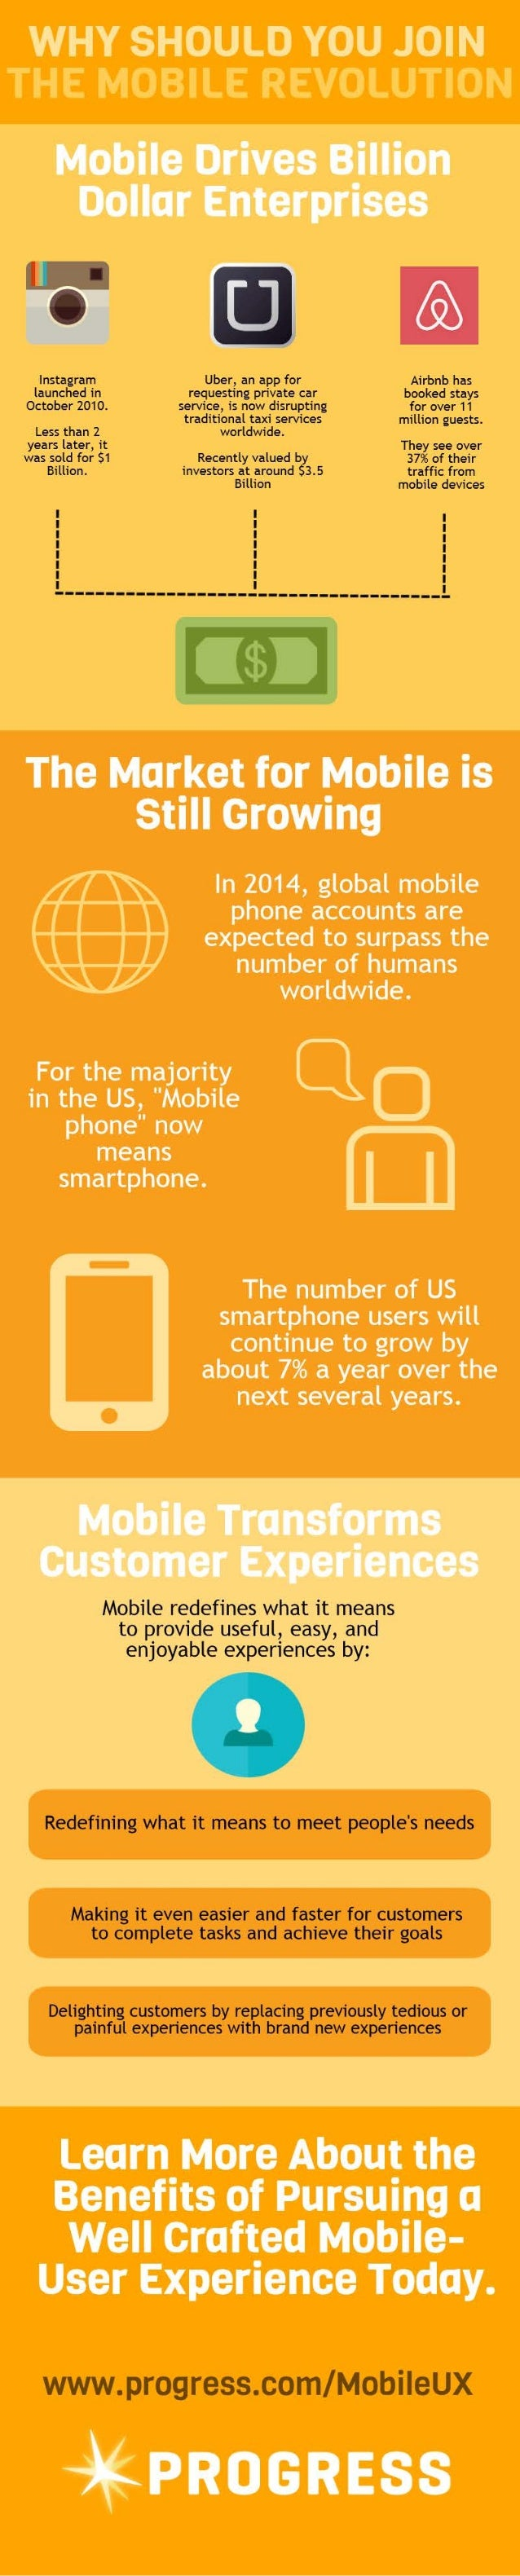 Why Should You Join The Mobile Revolution?